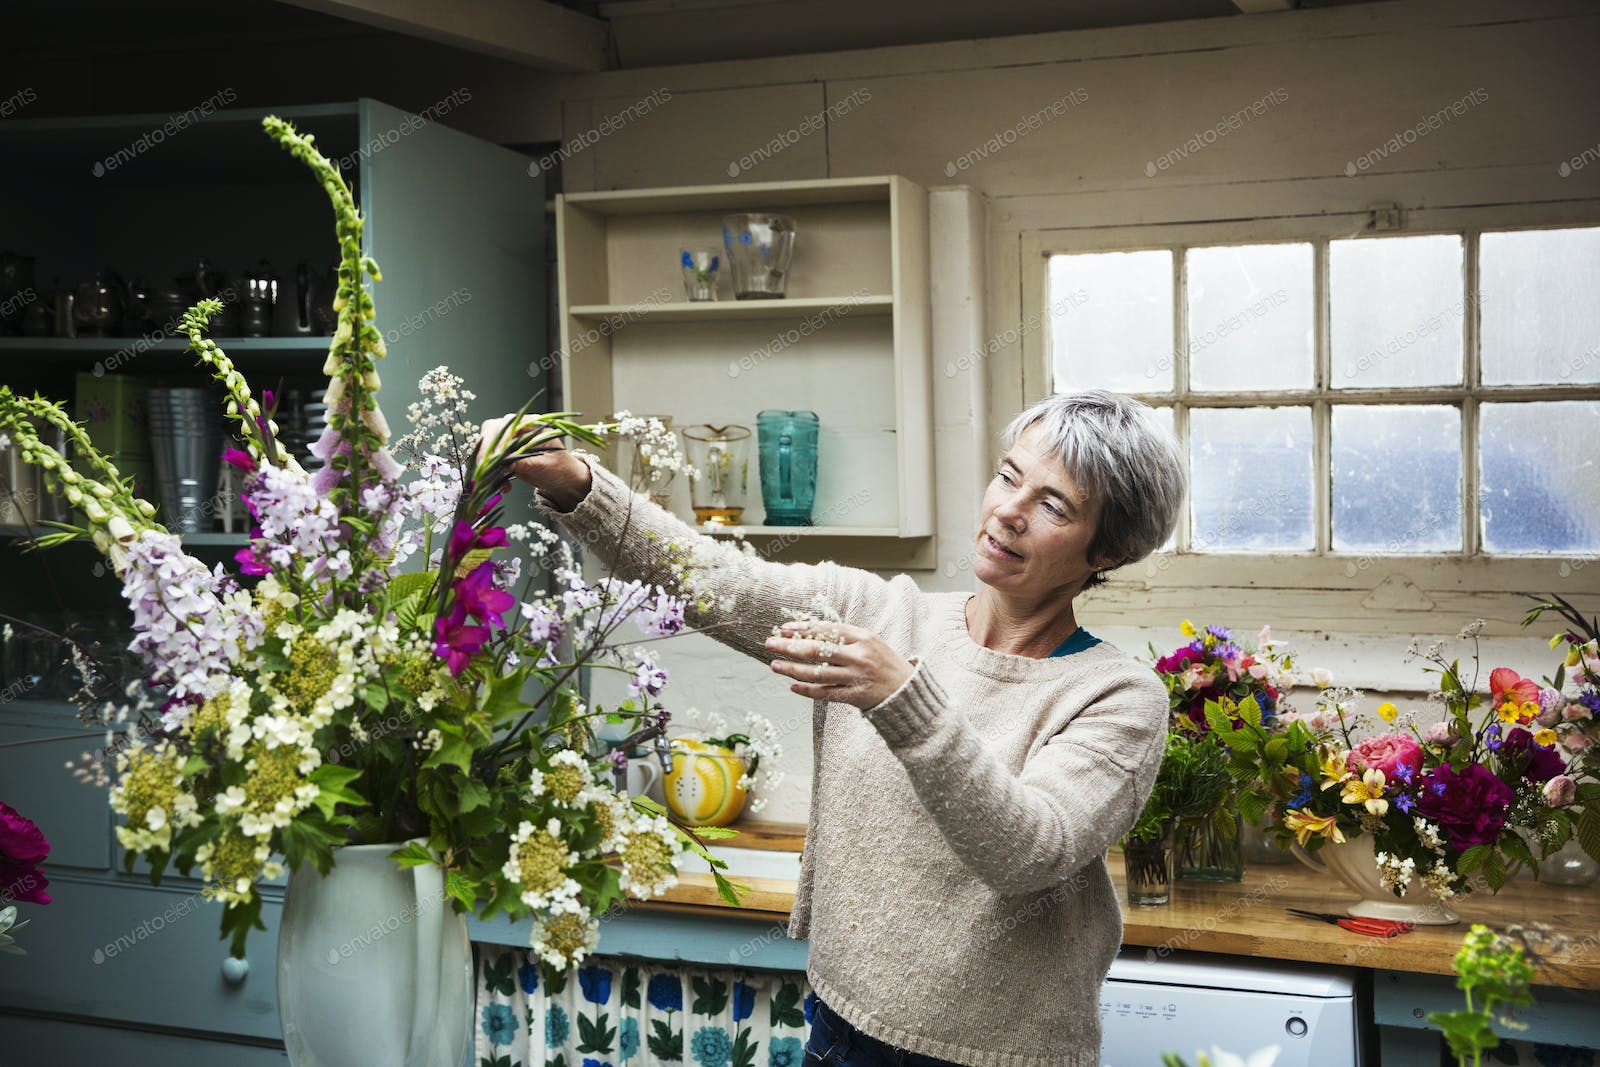 A Florist Working On A Tall Vase Arrangement Of Flowers Photo By Mint Images On Envato Elements